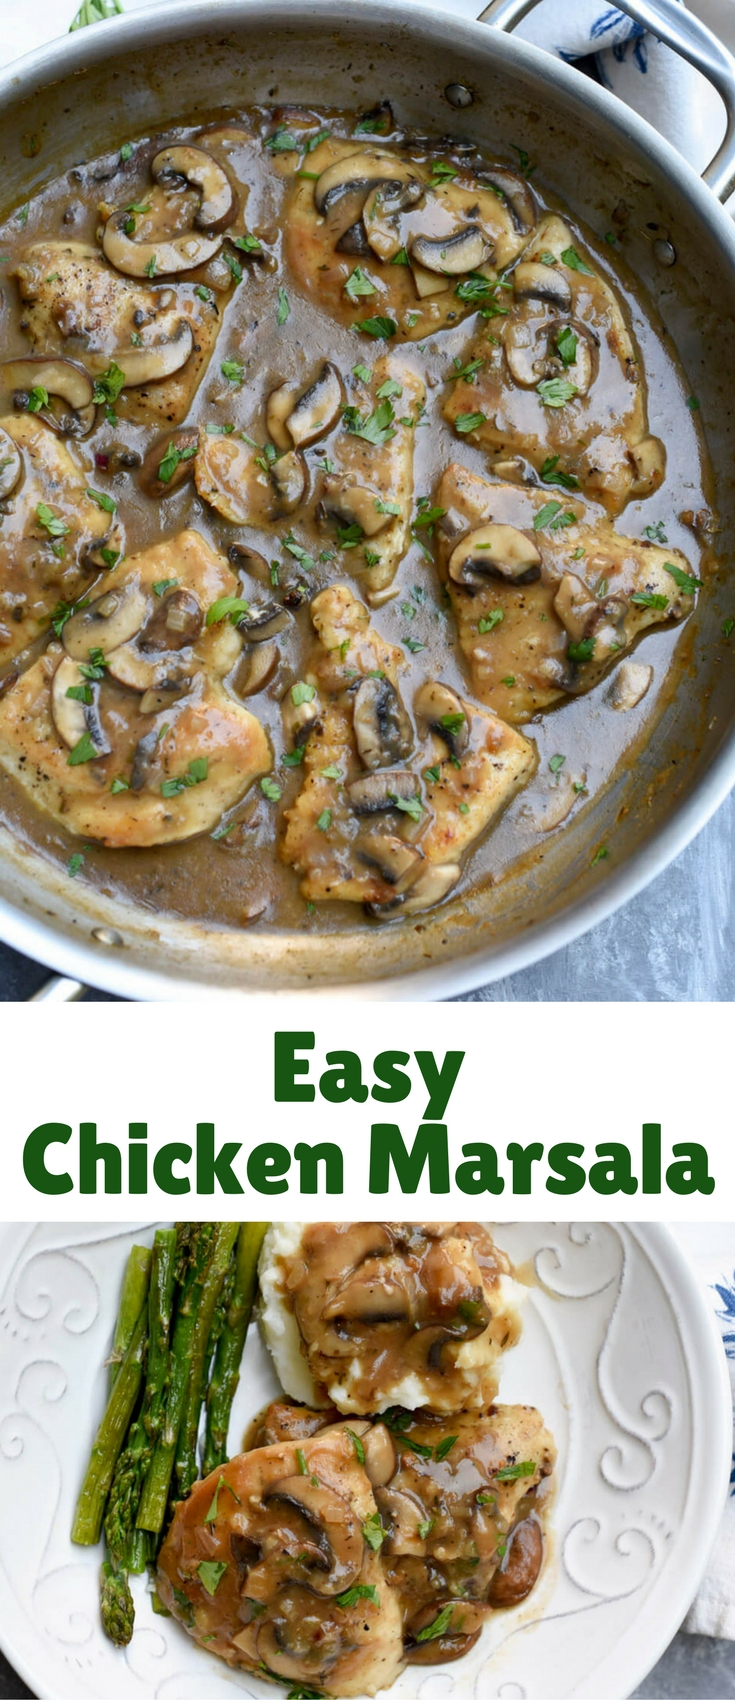 A delicious, but surprisingly easy recipe that results in a restaurant quality dish. Chicken Marsala is an impressive meal that takes less than 30 minutes to prepare.